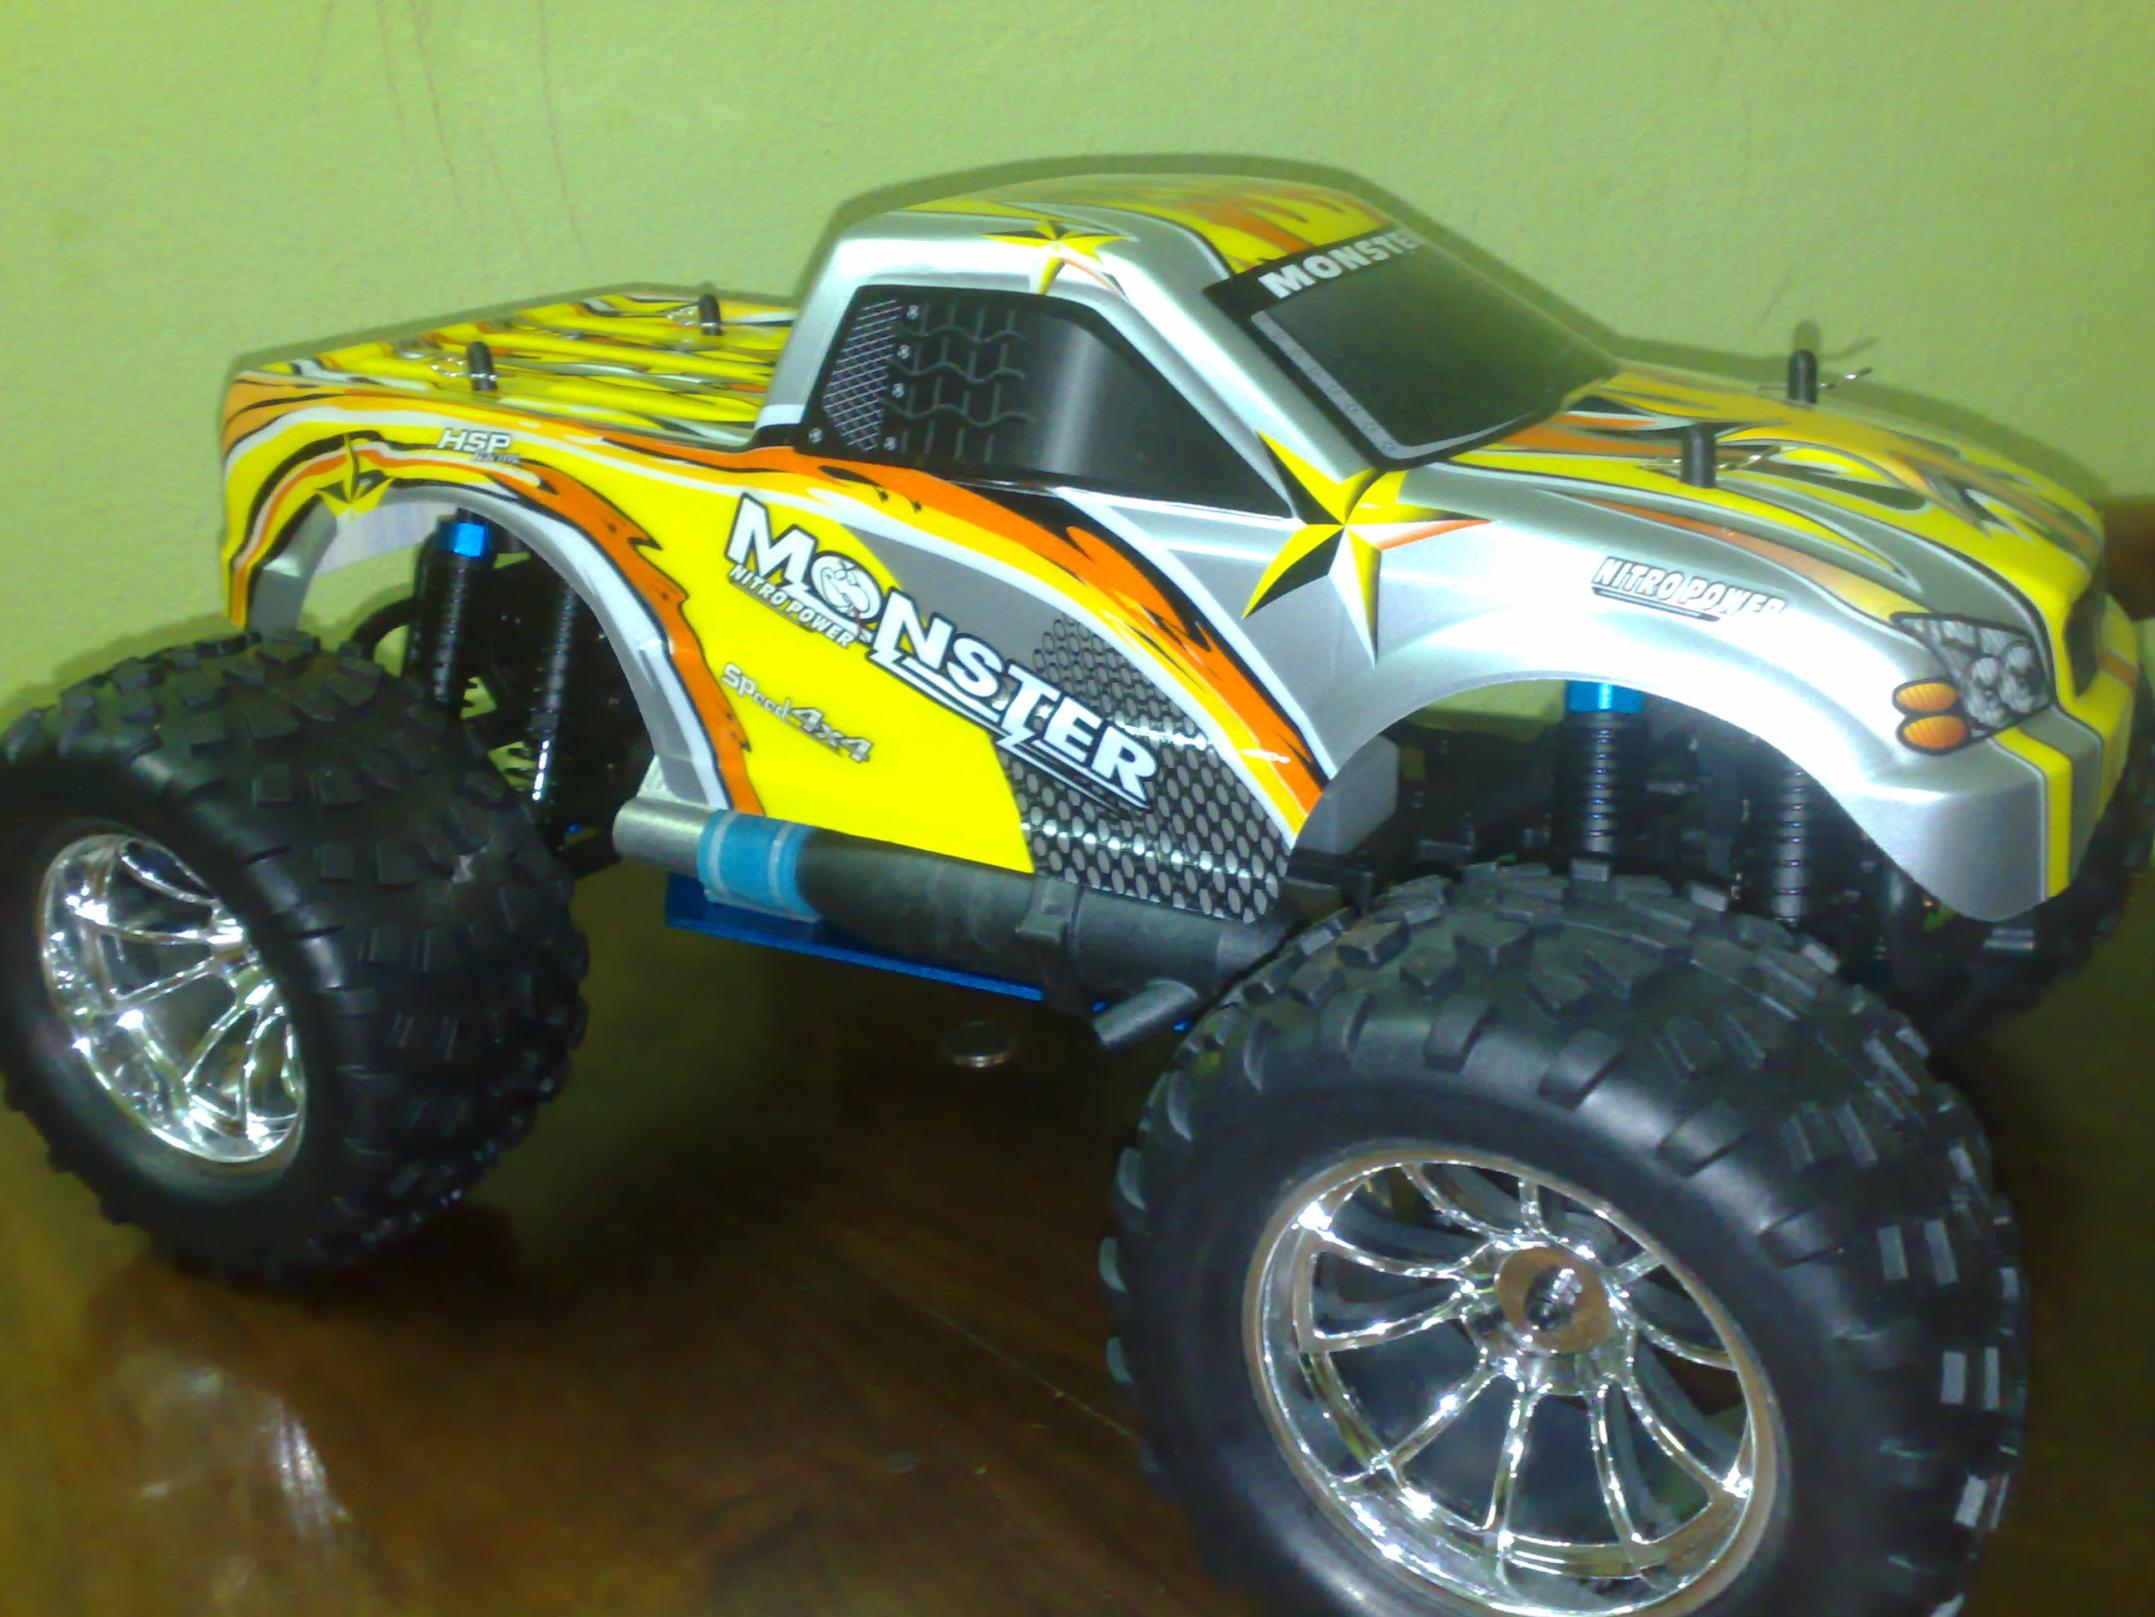 Piks of your MEAN truck!!! - Page 9 - R/C Tech Forums